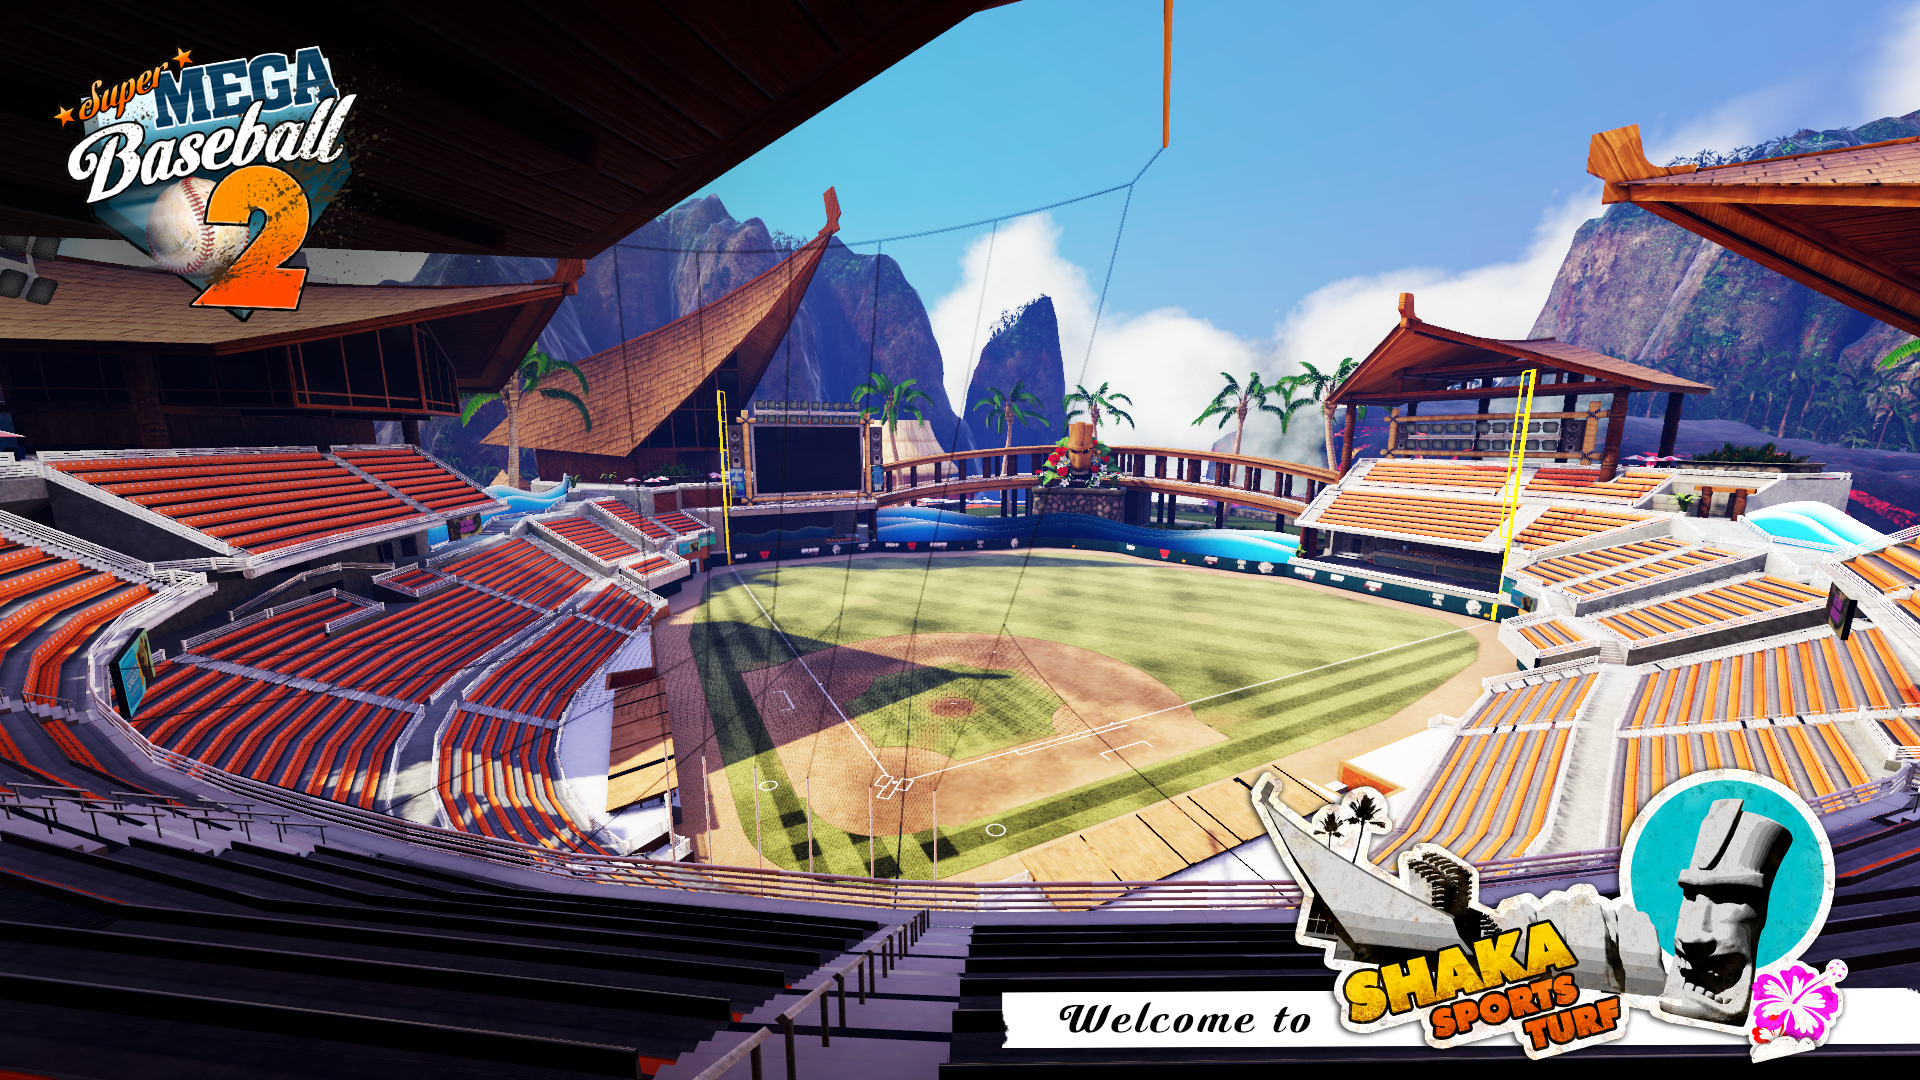 Super mega baseball 2 is coming to ps4 in 2017 for Palazzi super mega